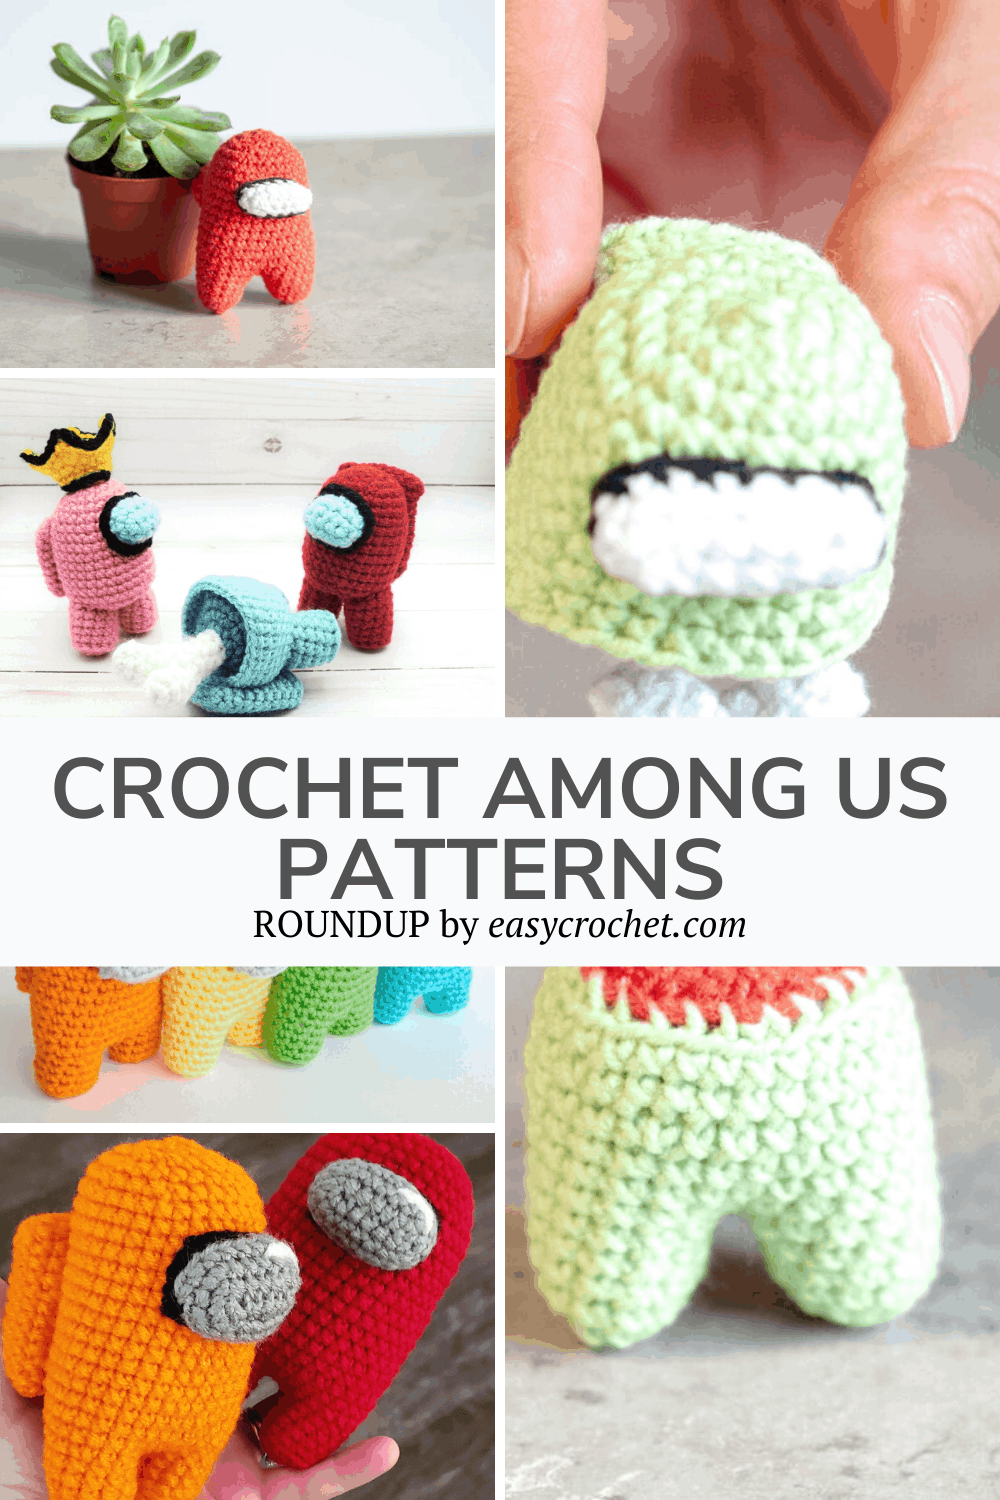 Crochet Patterns for Among Us Game